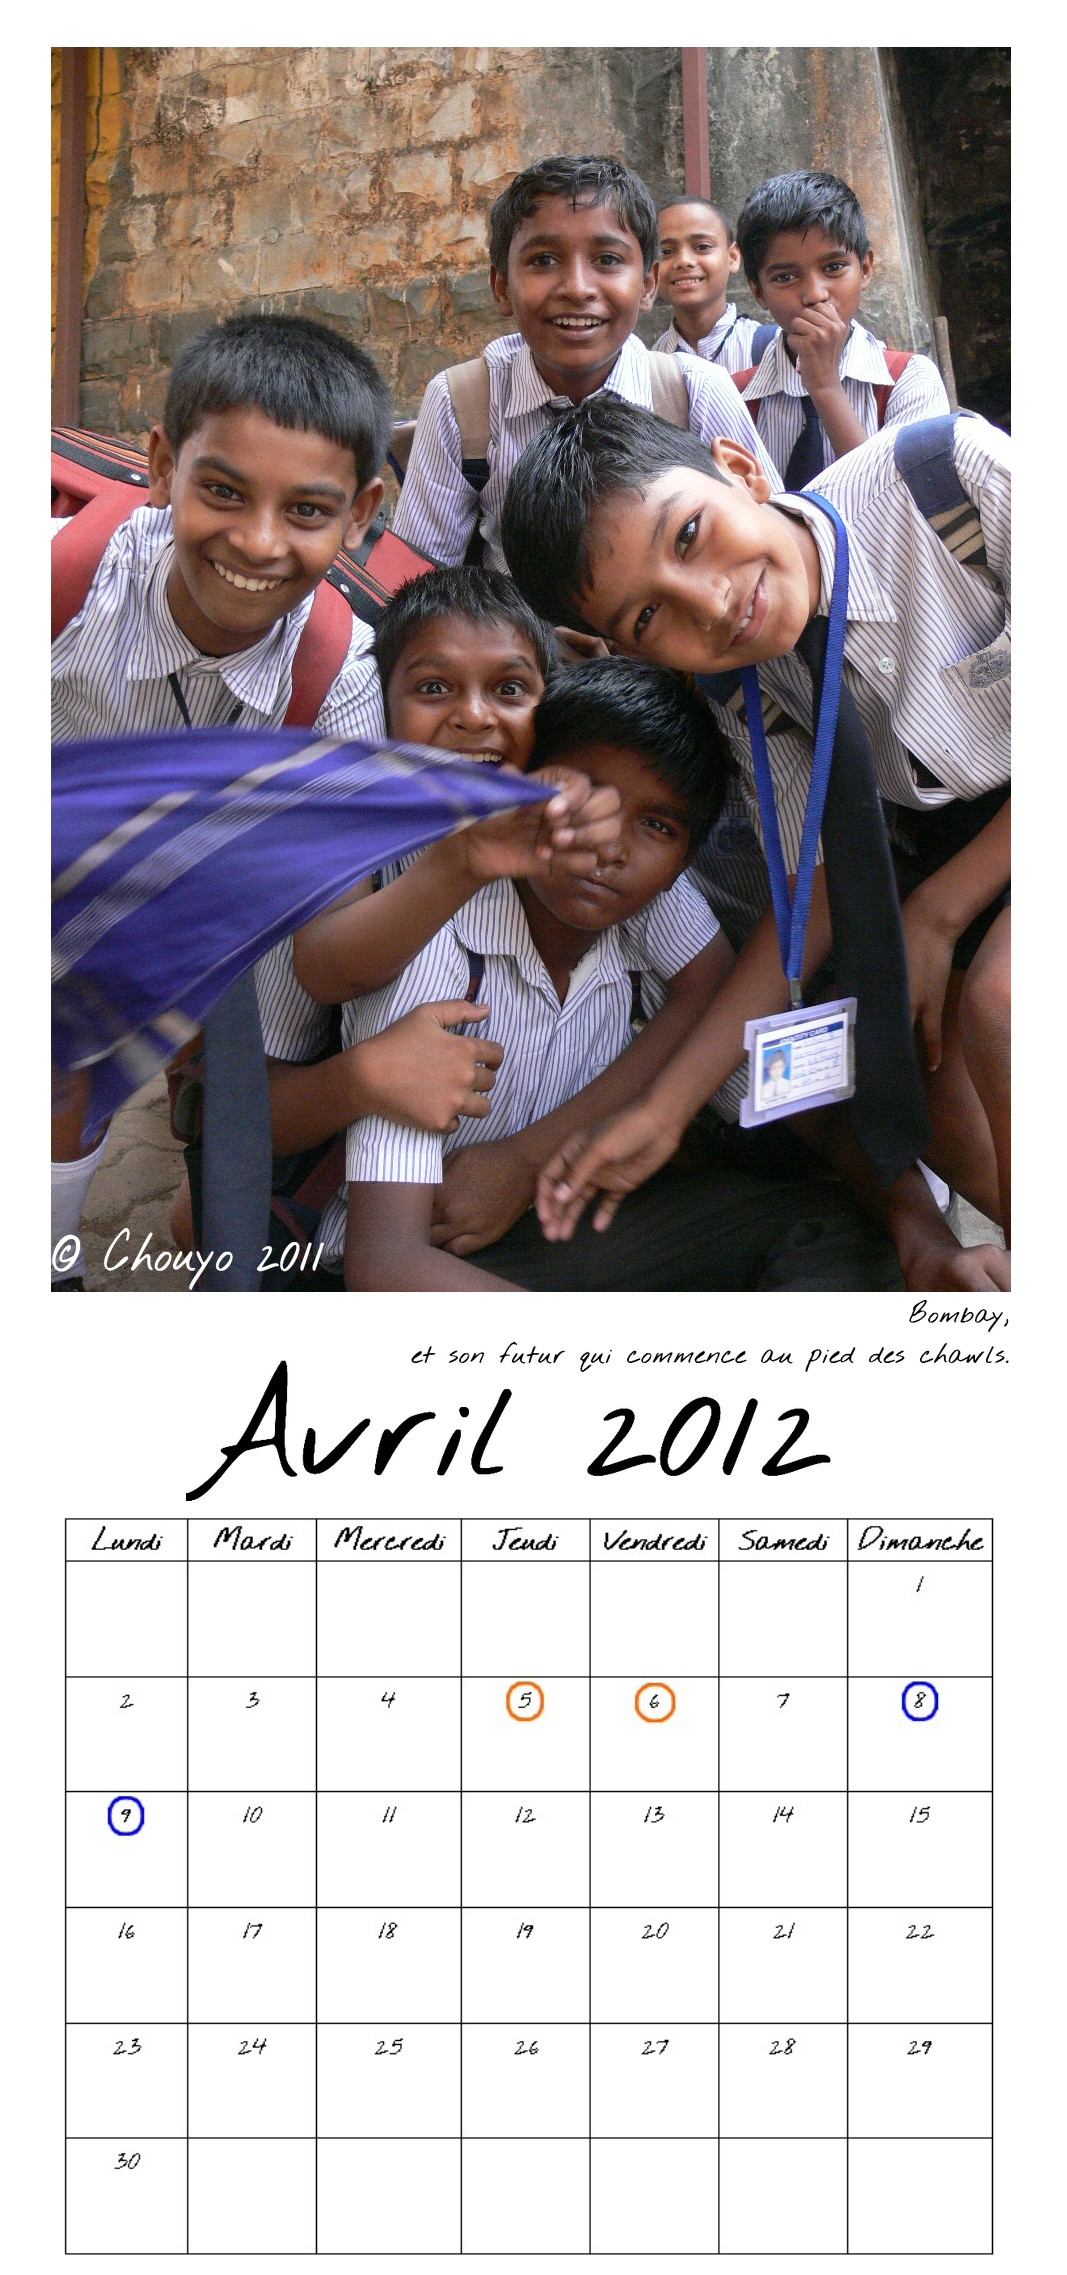 Calendrier Bombay Avril entier